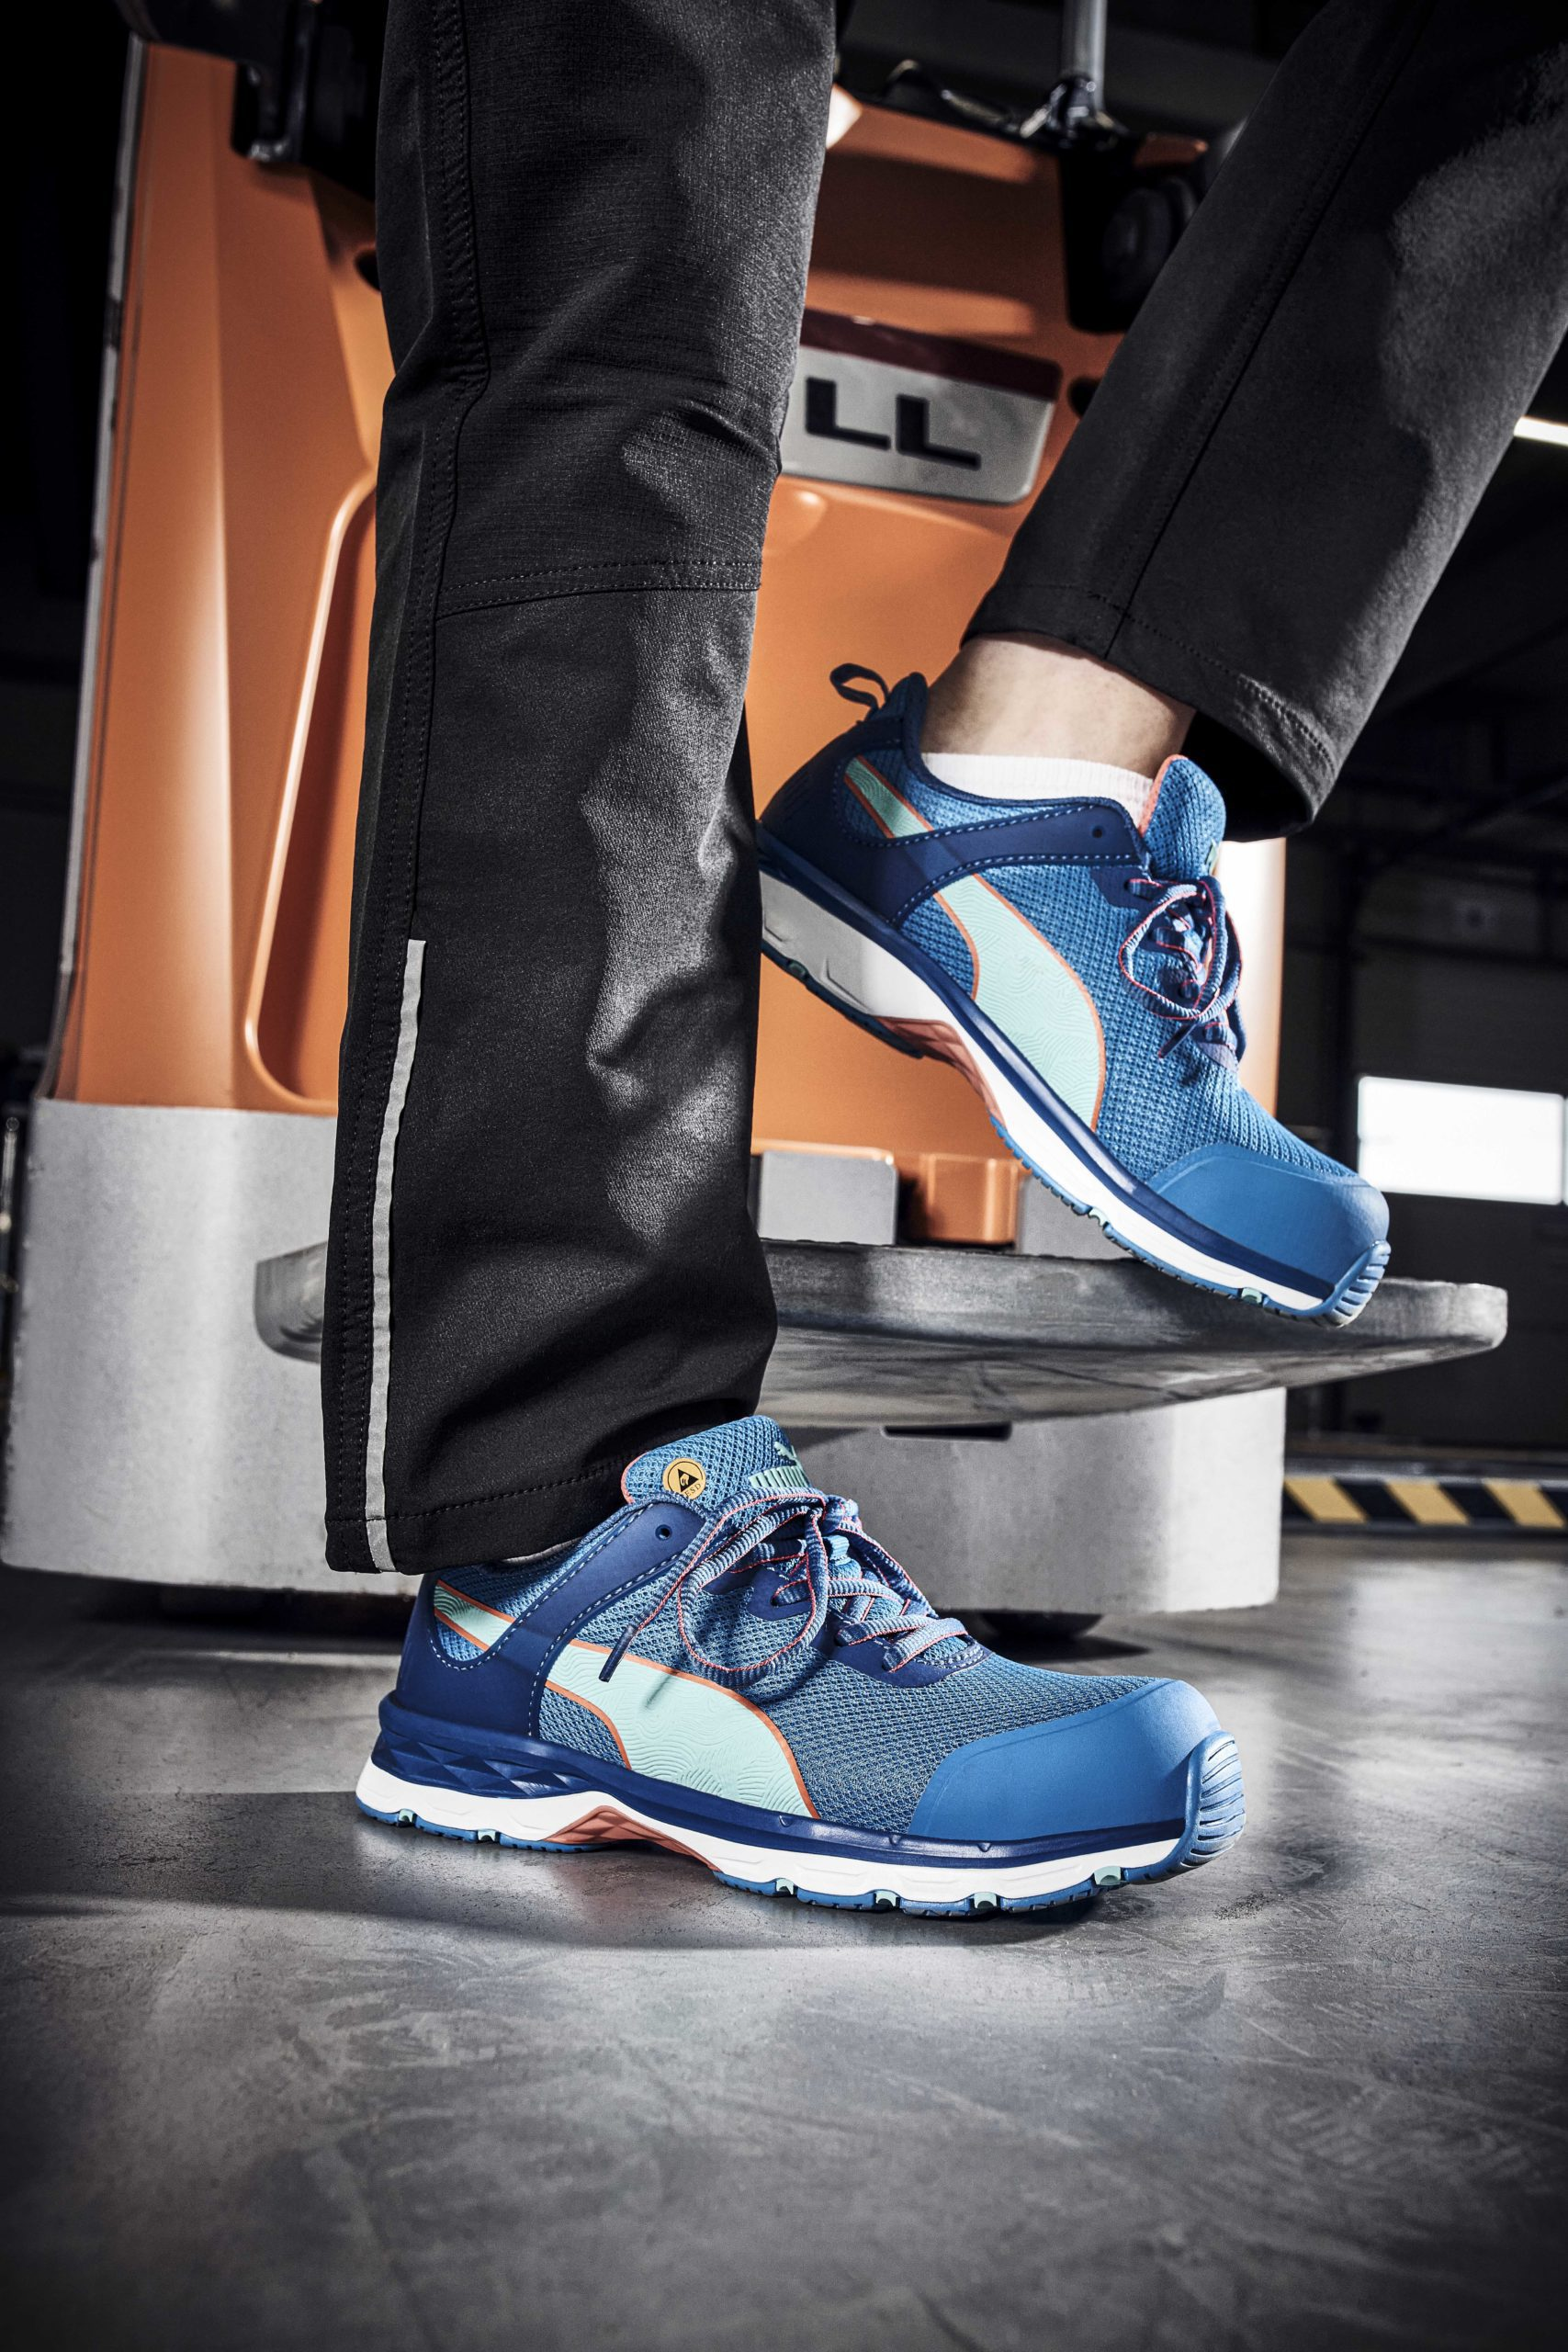 Albatros and Puma Safety Release New and Innovative Products